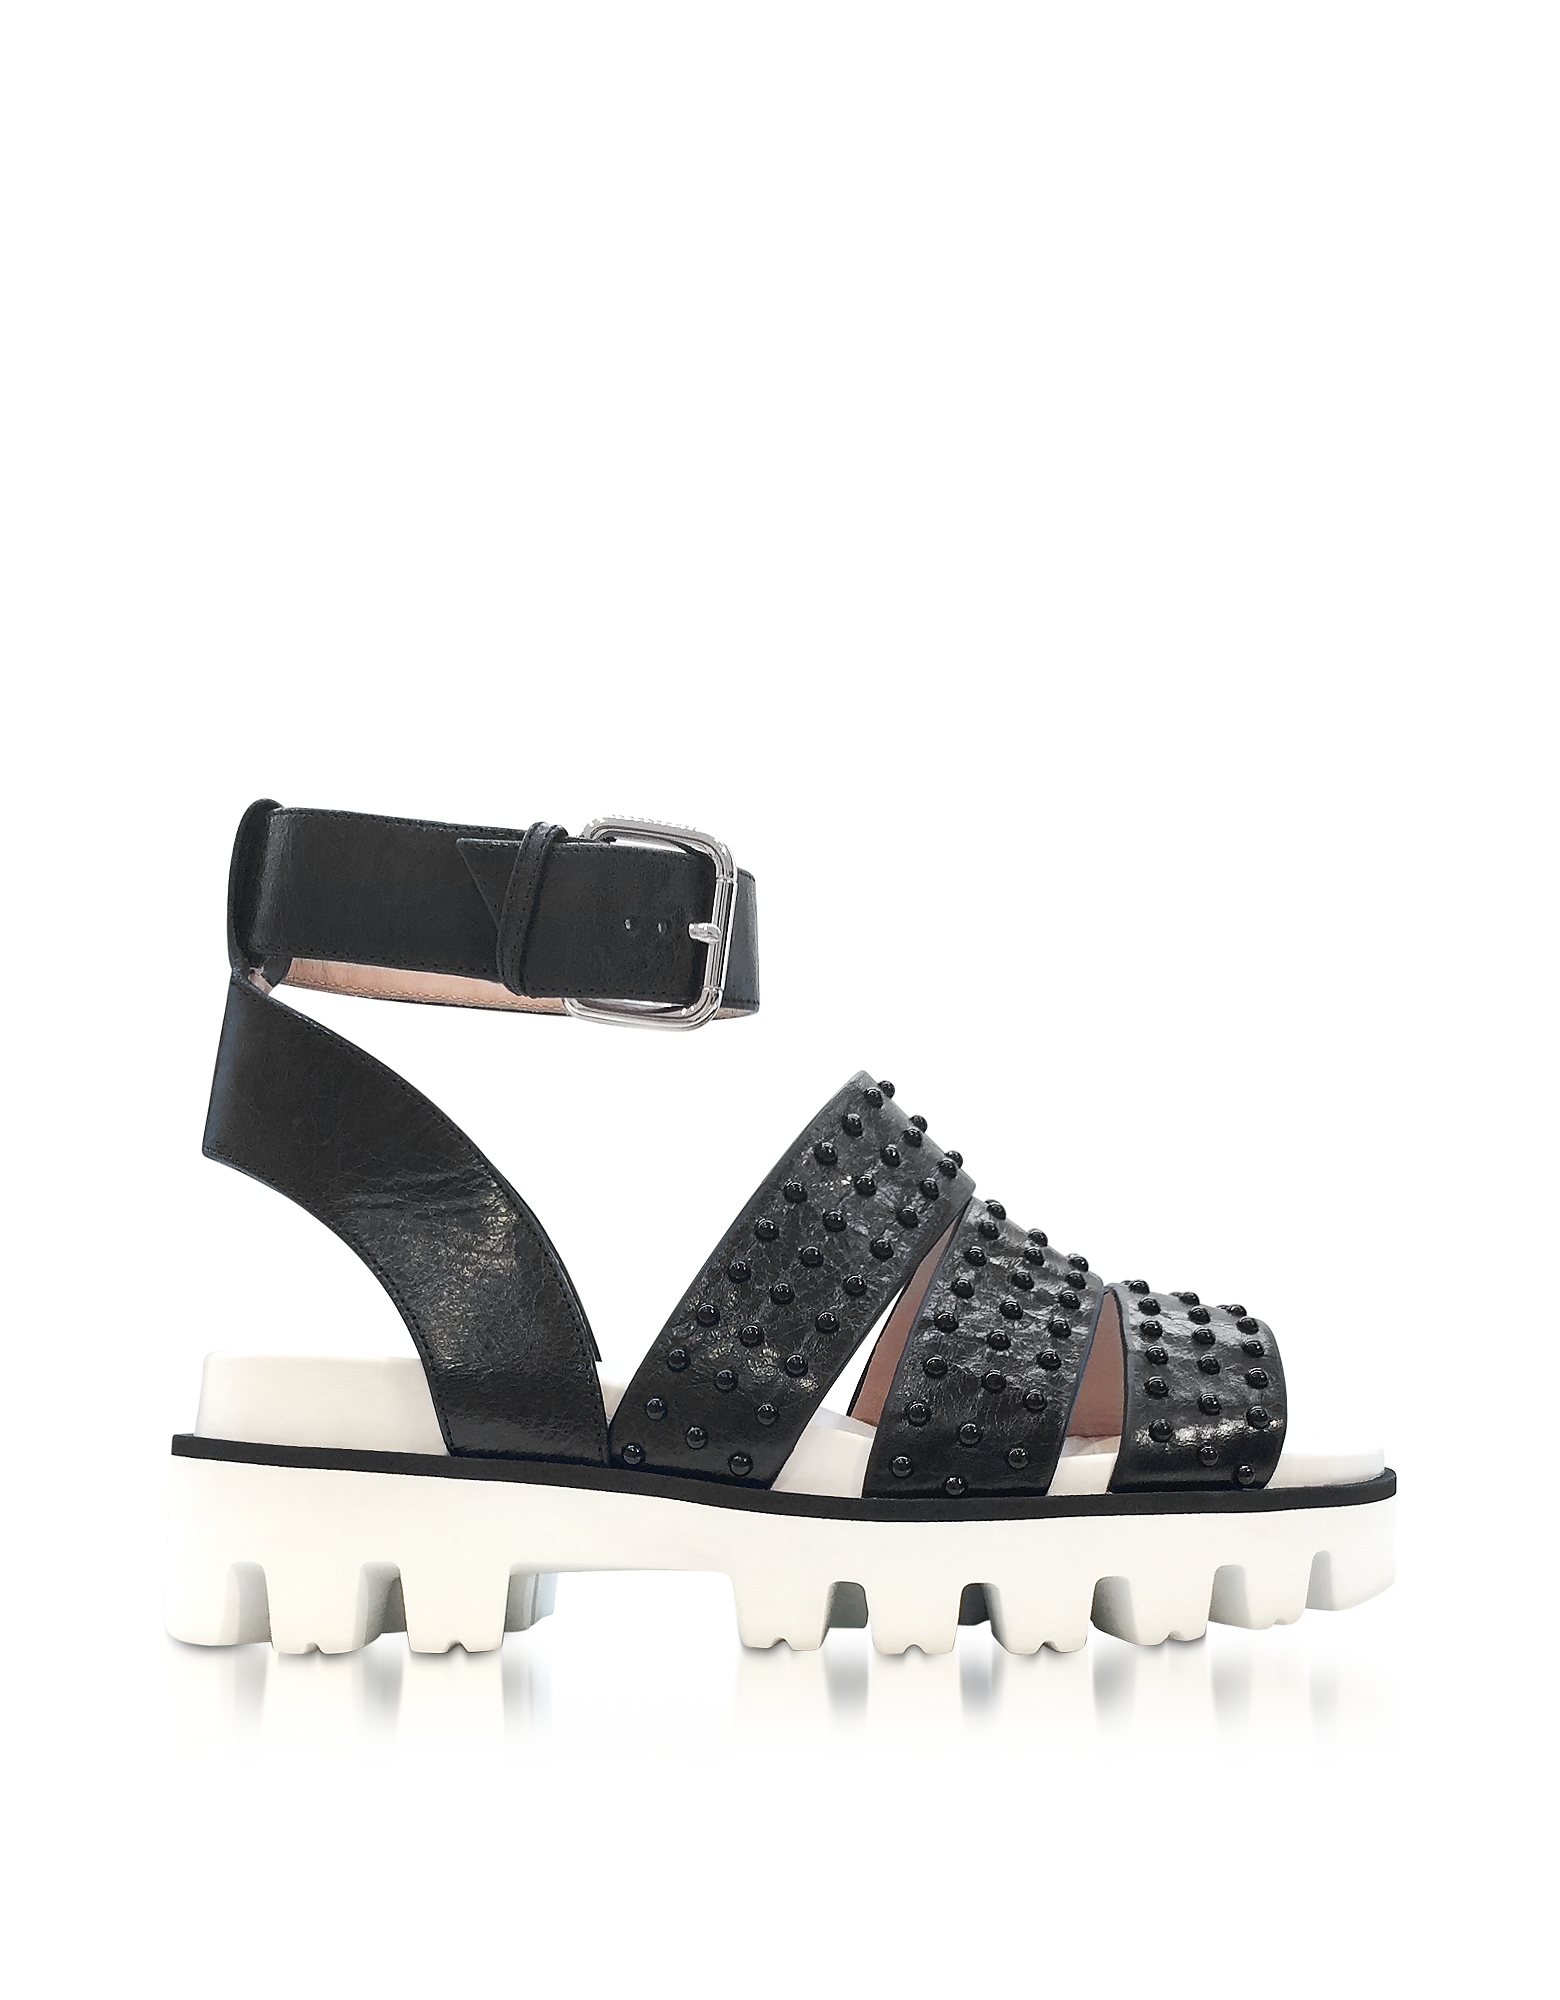 RED Valentino Shoes, Black Leather Flat Sandals w/Studs